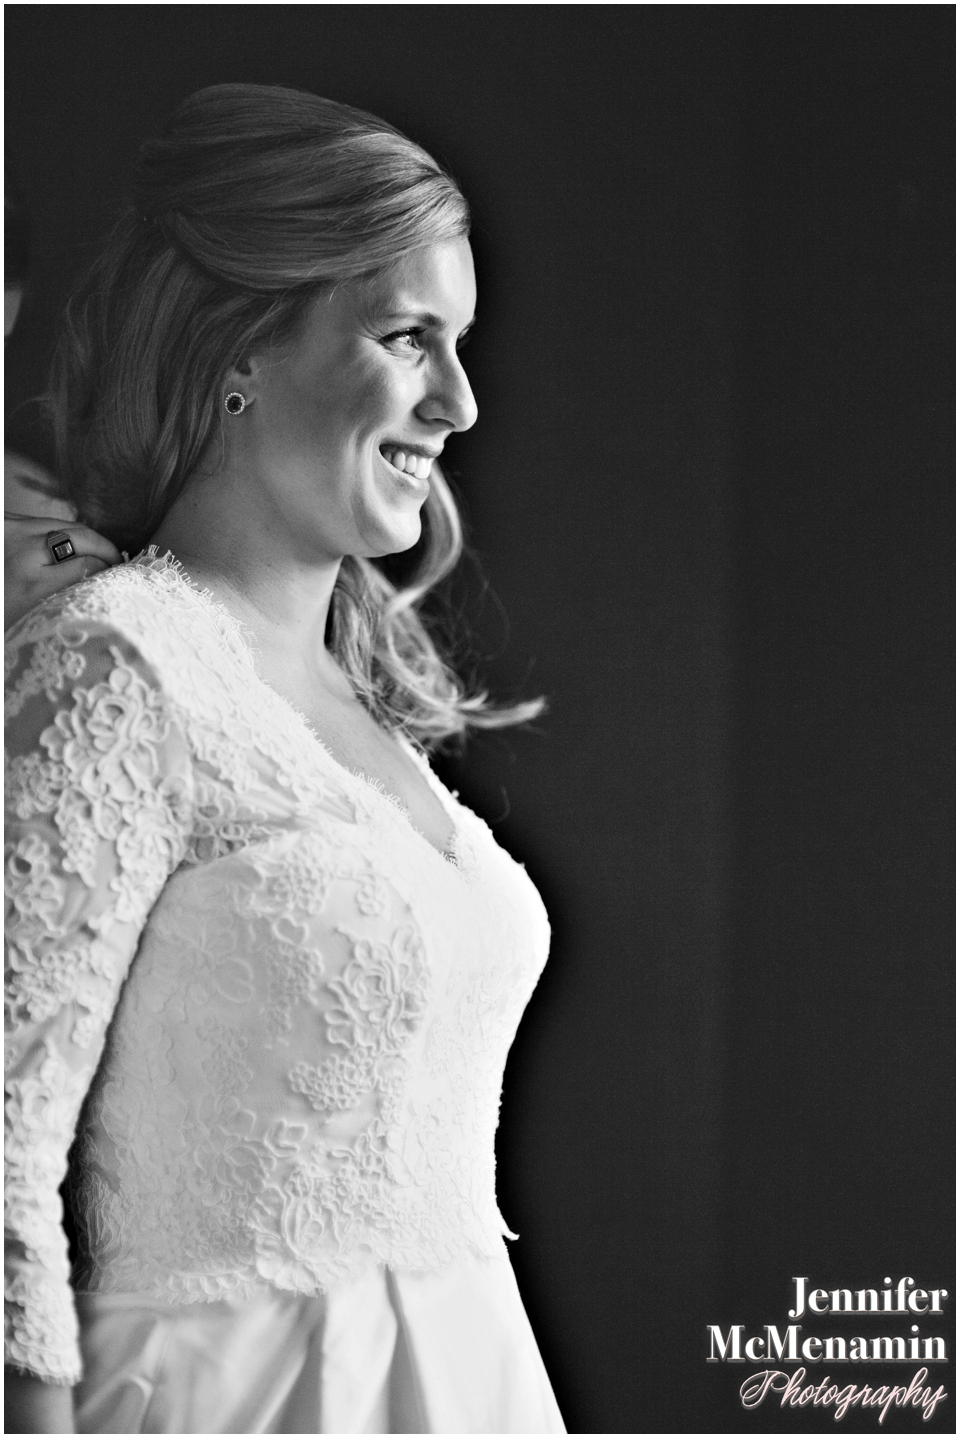 0021_RyanClemmens_00579bw-0148_JenniferMcMenaminPhotography_Immaculate-Conception-Church_The-Cloisters_Baltimore-wedding-photography_Baltimore-wedding-photographer